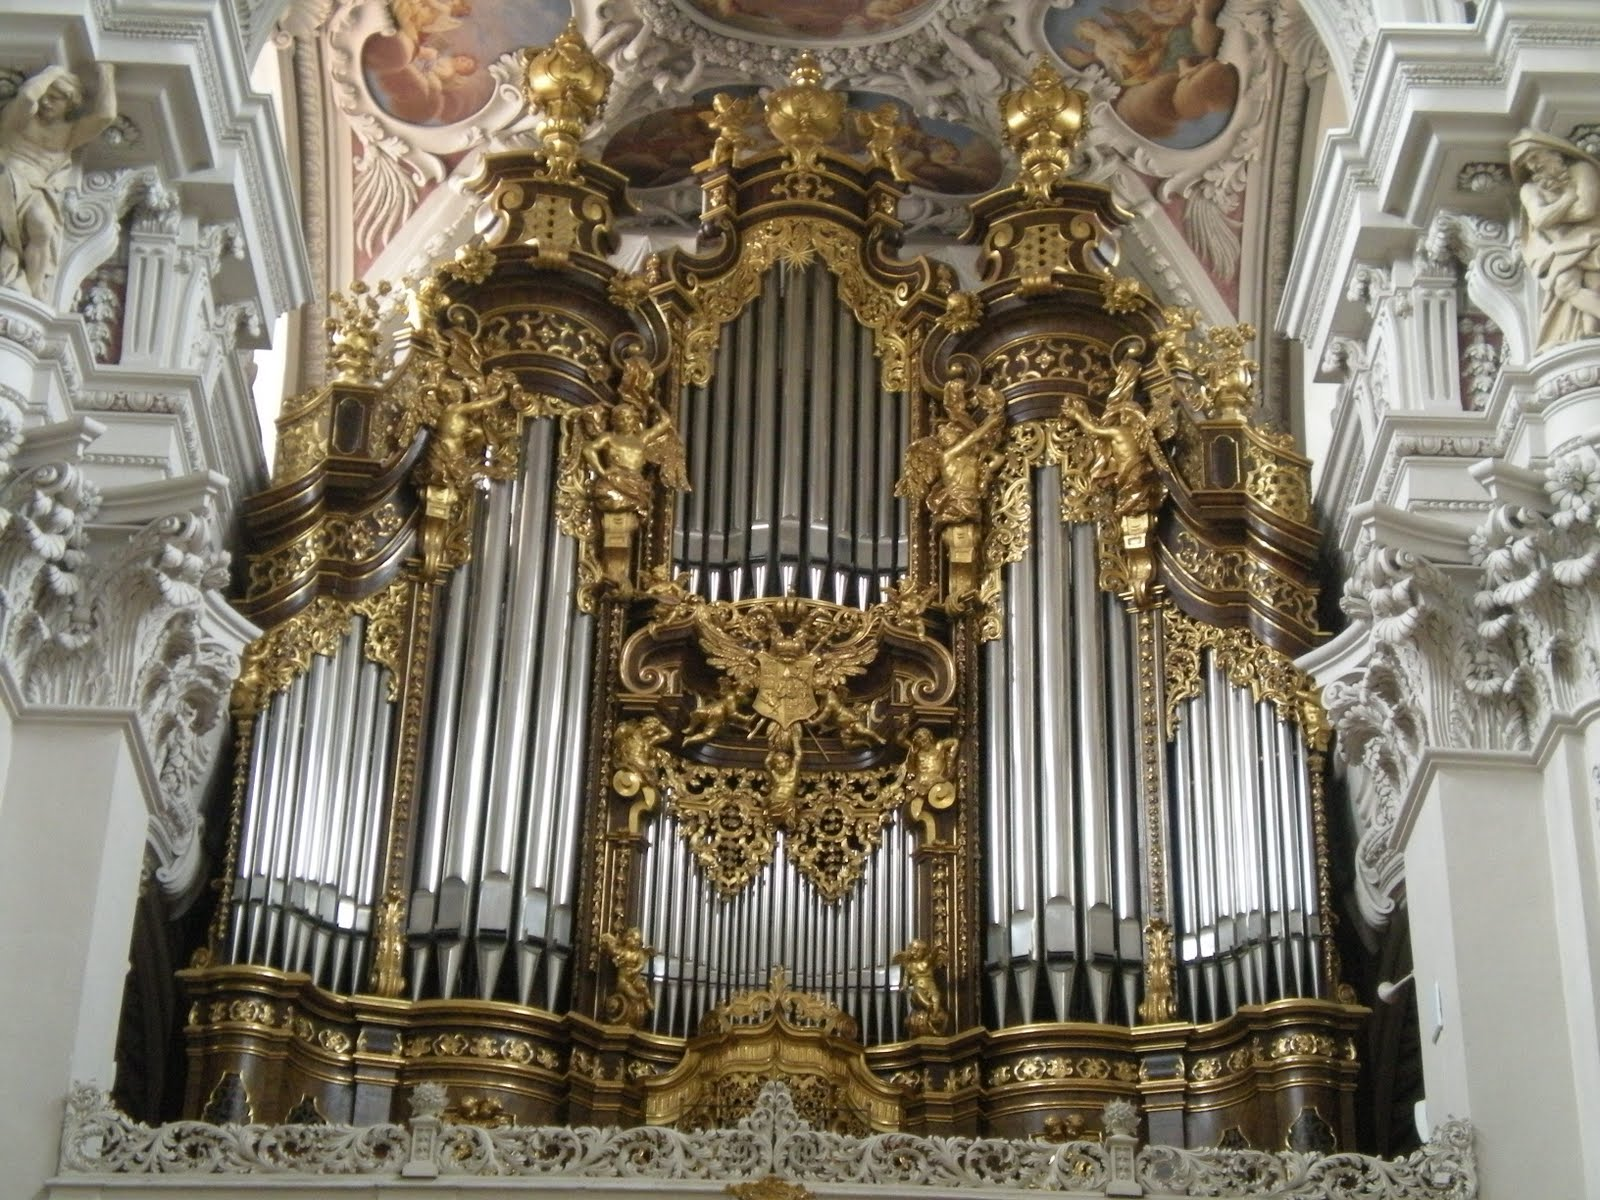 The Pipe Organ More Than Just A Church Instrument Gosouth